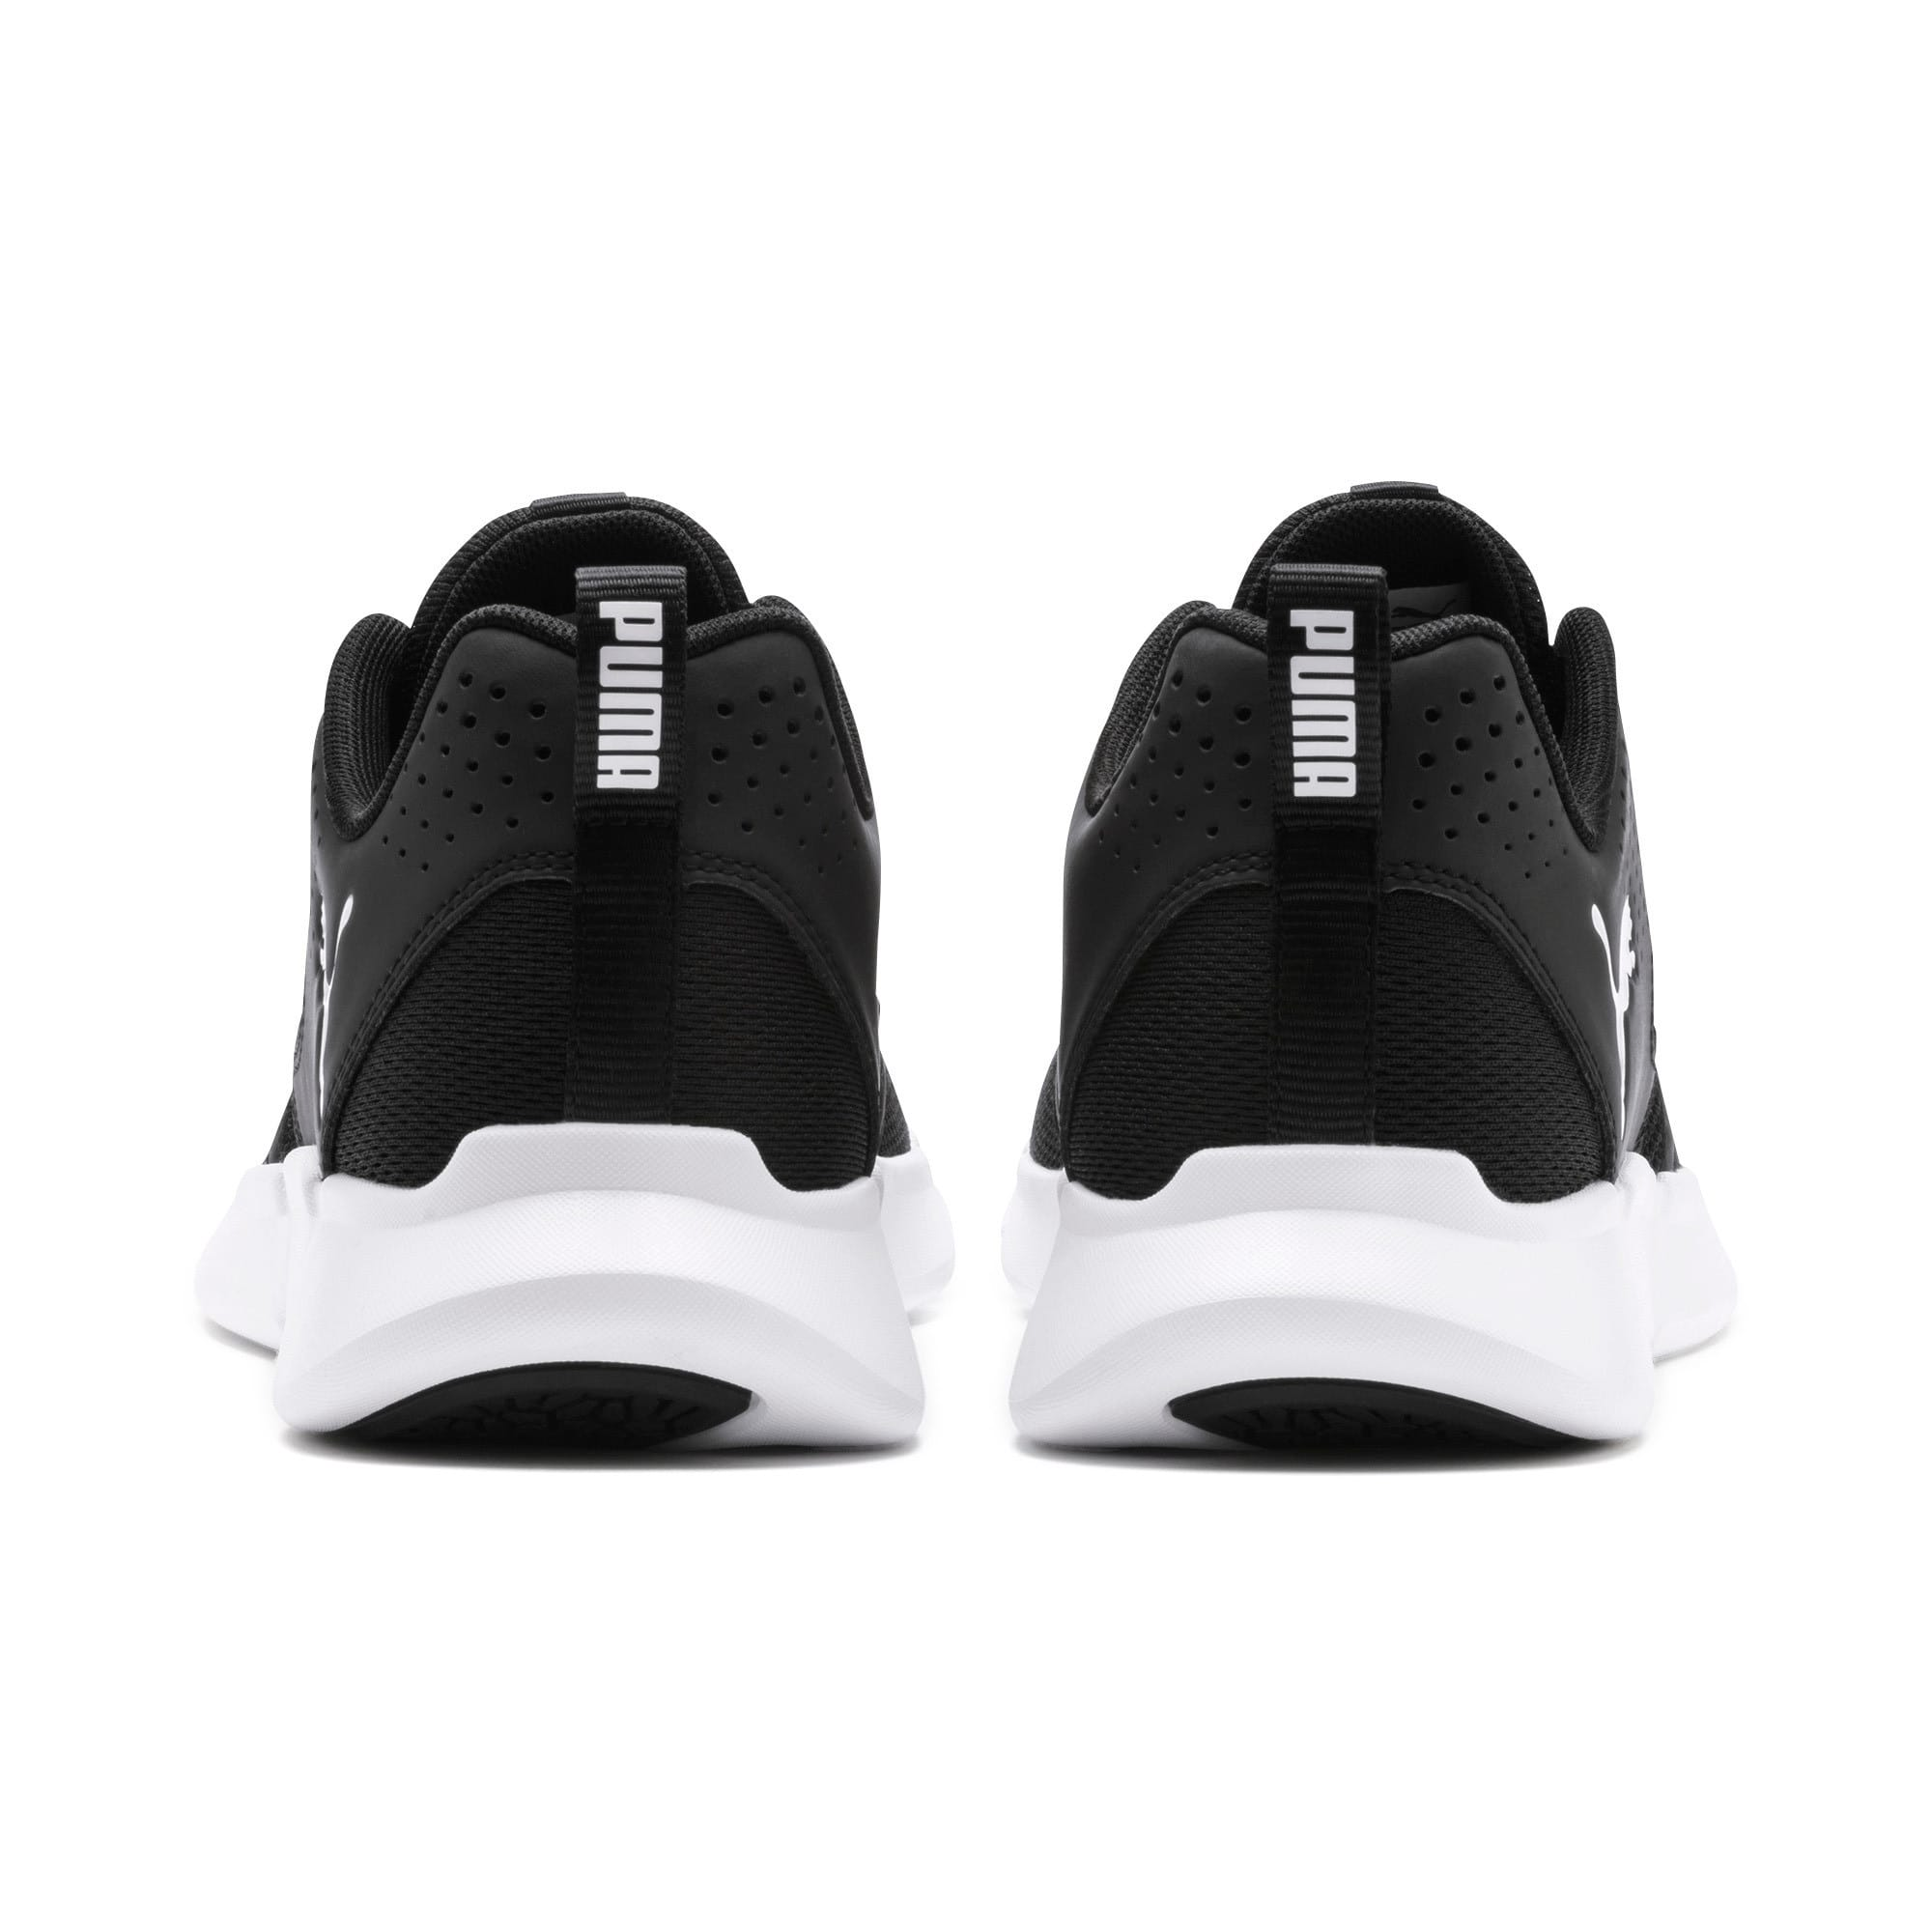 Thumbnail 5 of INTERFLEX Modern Sneakers, Puma Black-Puma White, medium